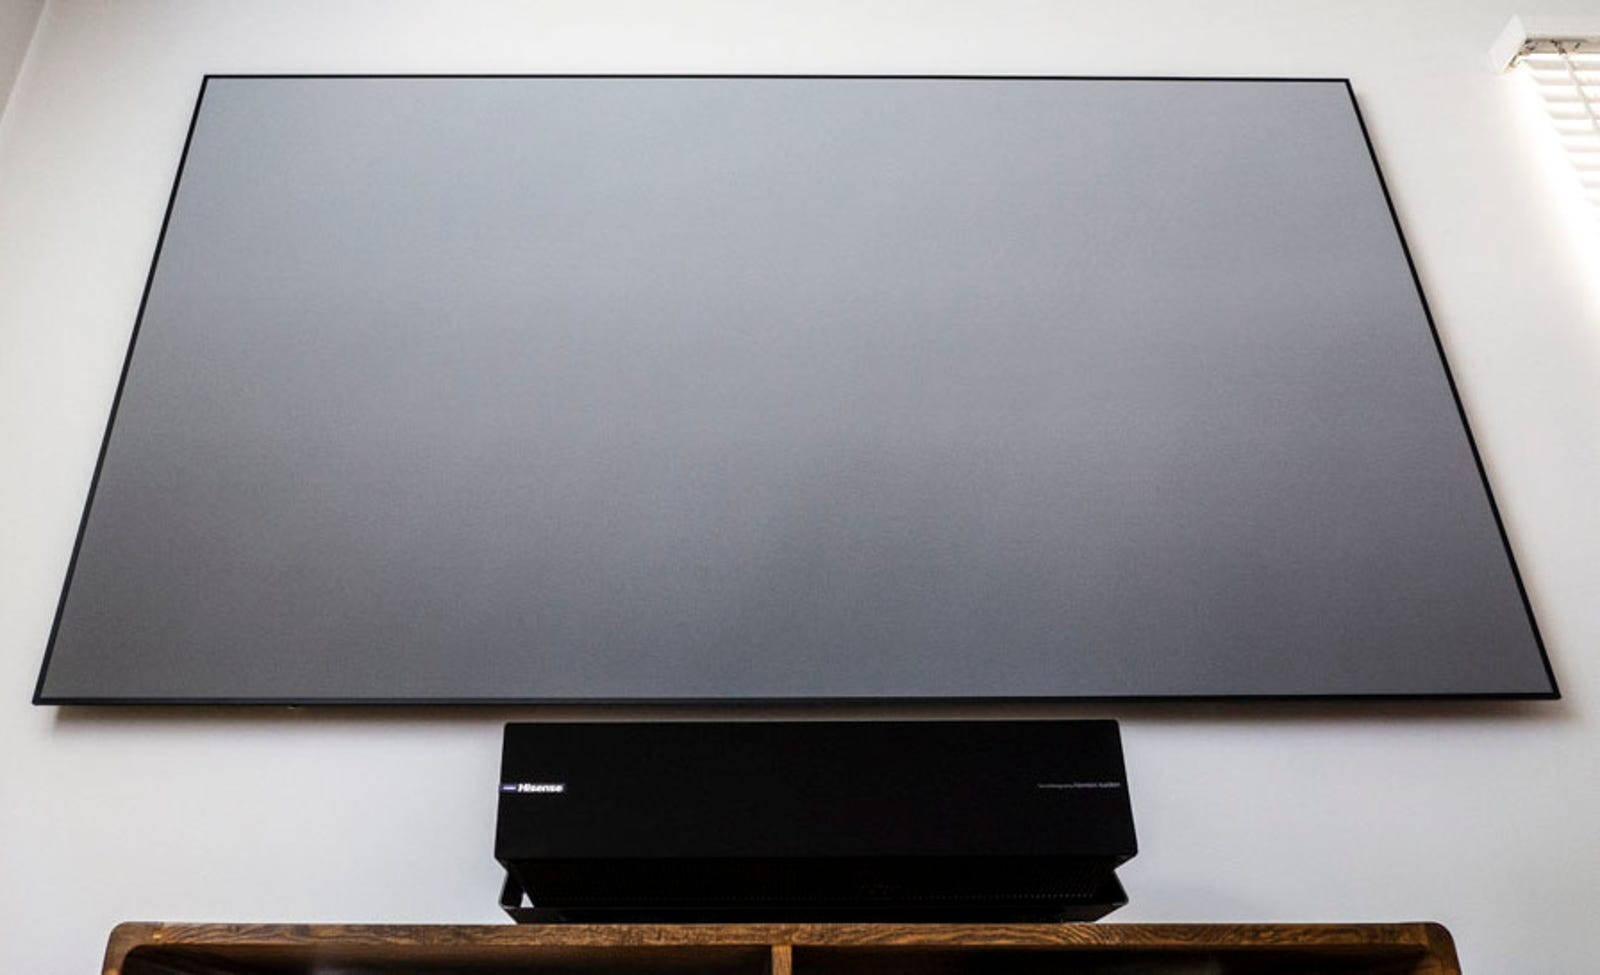 Behold The 100-Inch Laser TV